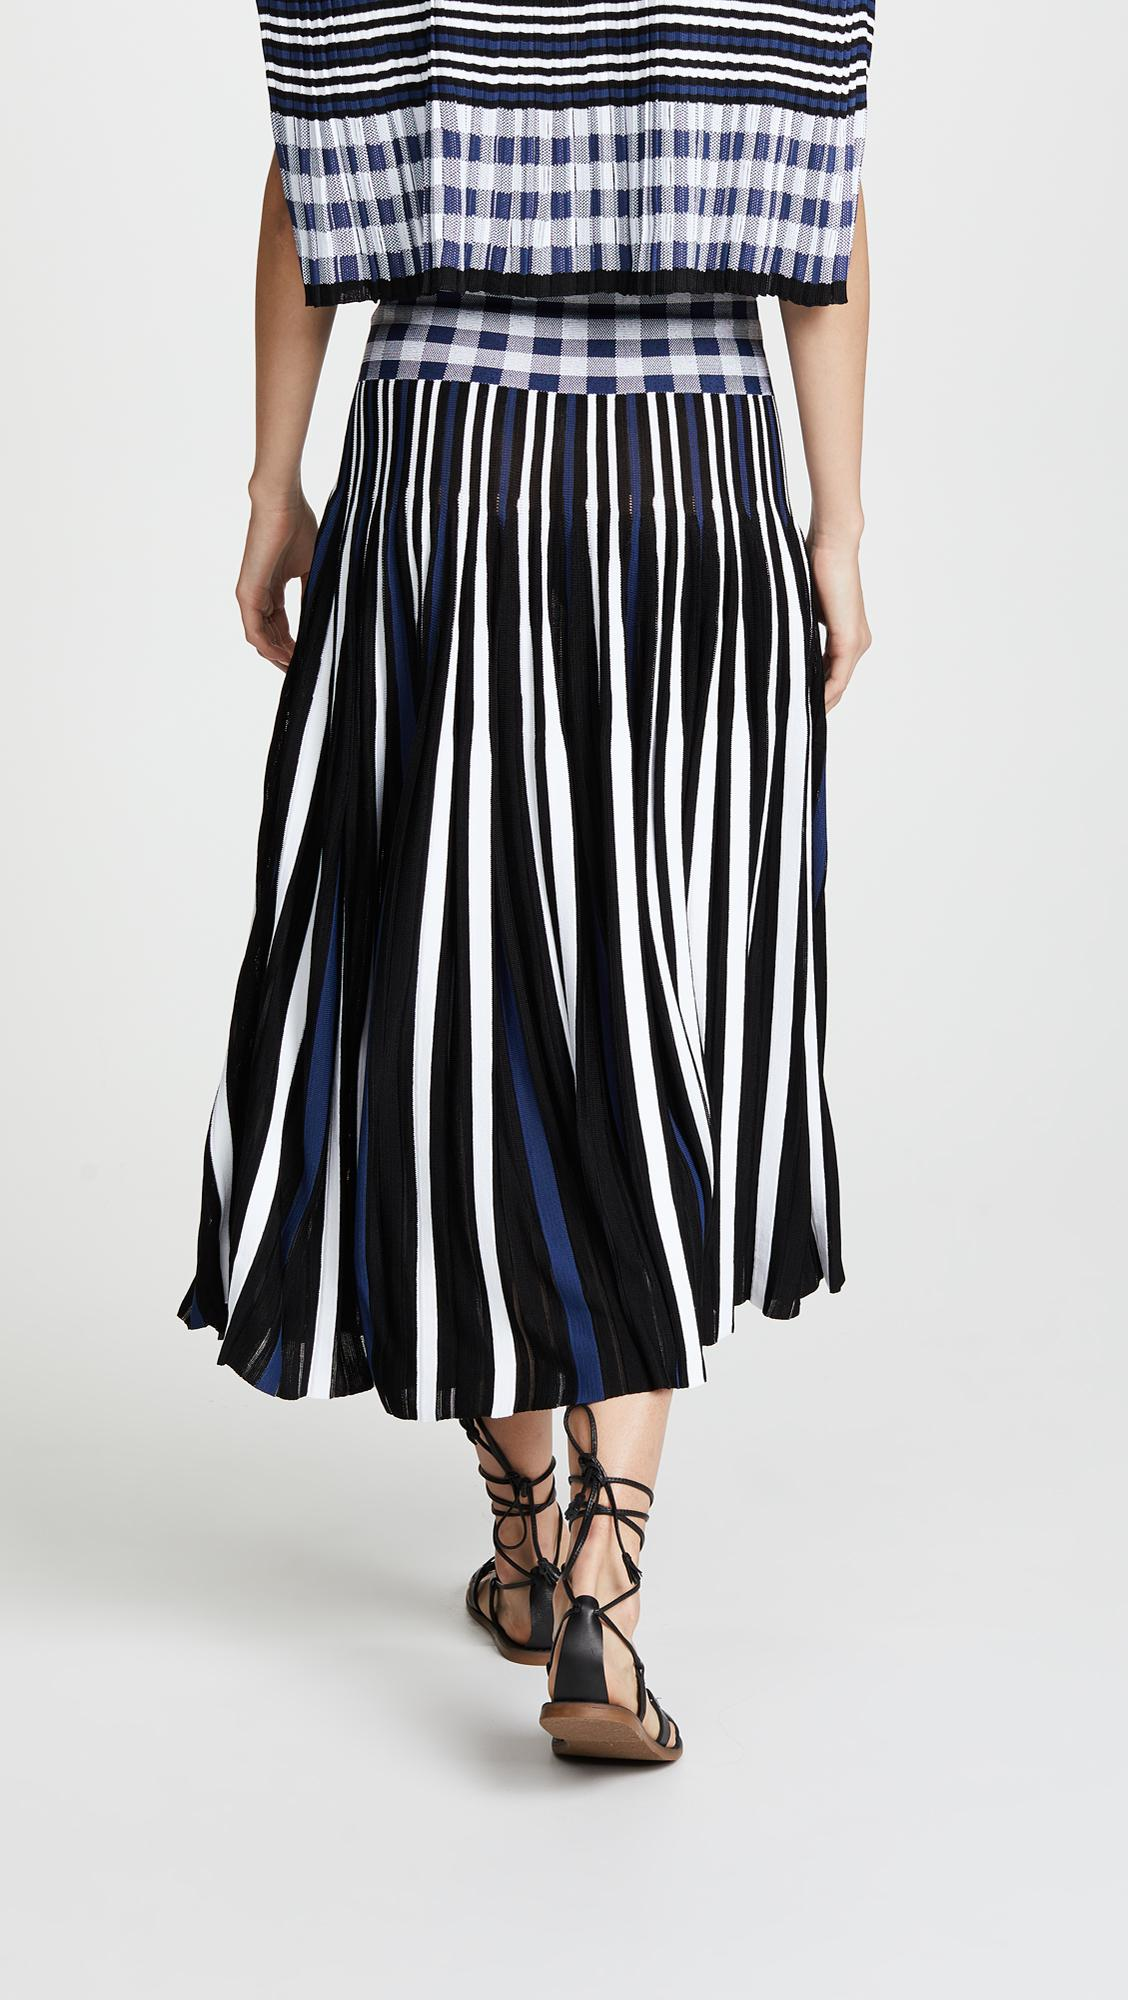 eb67addfdc Gallery. Previously sold at: Shopbop · Women's Midi Skirts Women's Pleated  ...